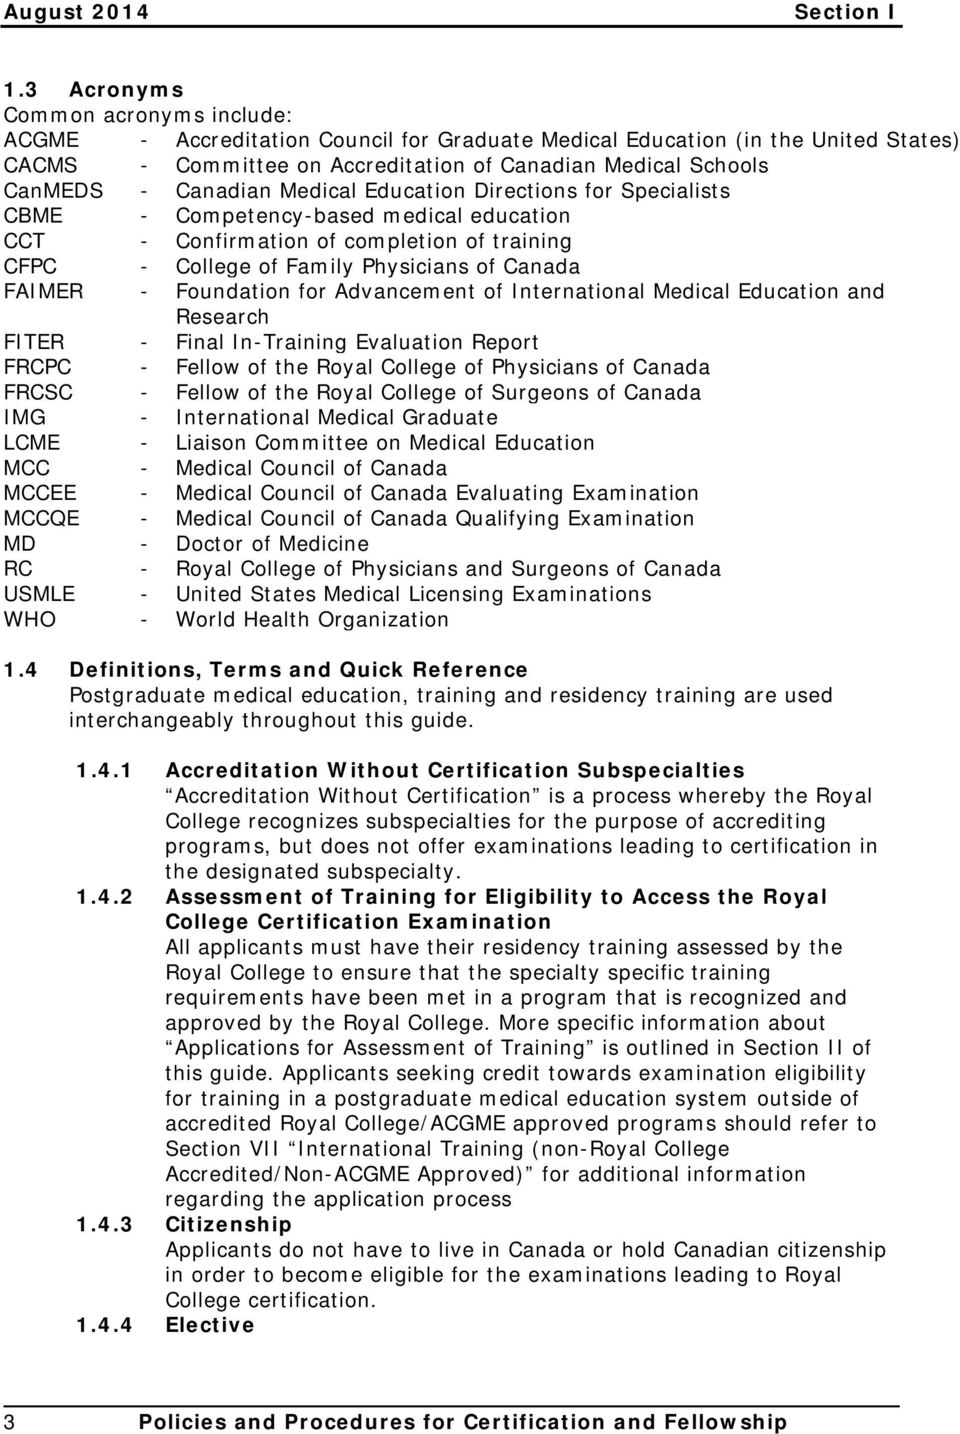 Canadian Medical Education Directions for Specialists CBME CCT - - Competency-based medical education Confirmation of completion of training CFPC - College of Family Physicians of Canada FAIMER -